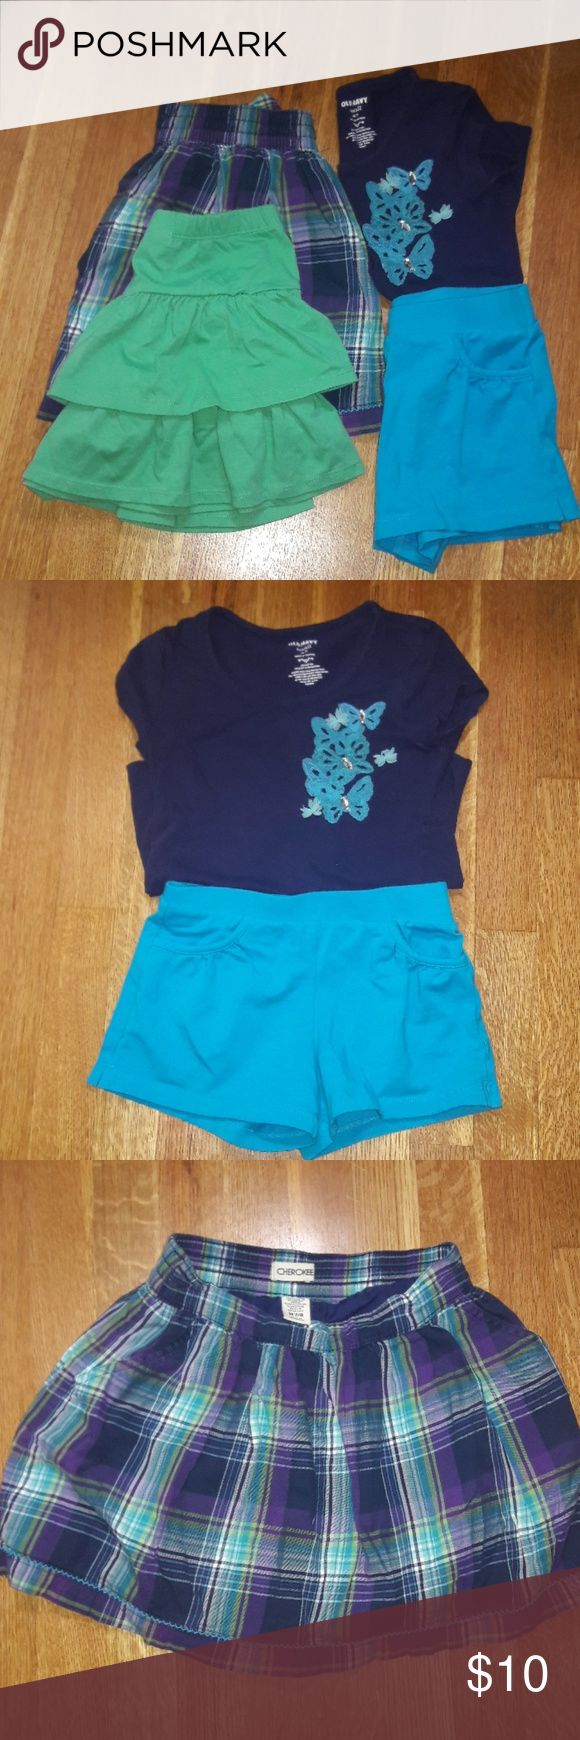 Girls size 7 bundle 3 bottoms and 1 top 1 skirt size 7/8 Cheroke plaid purple,blue, light green 1 skirt Gymboree green size 7 1 short size 7/8 blue 1 top Old Navy size small All in good condition, some worn once Gymboree Bottoms Skirts